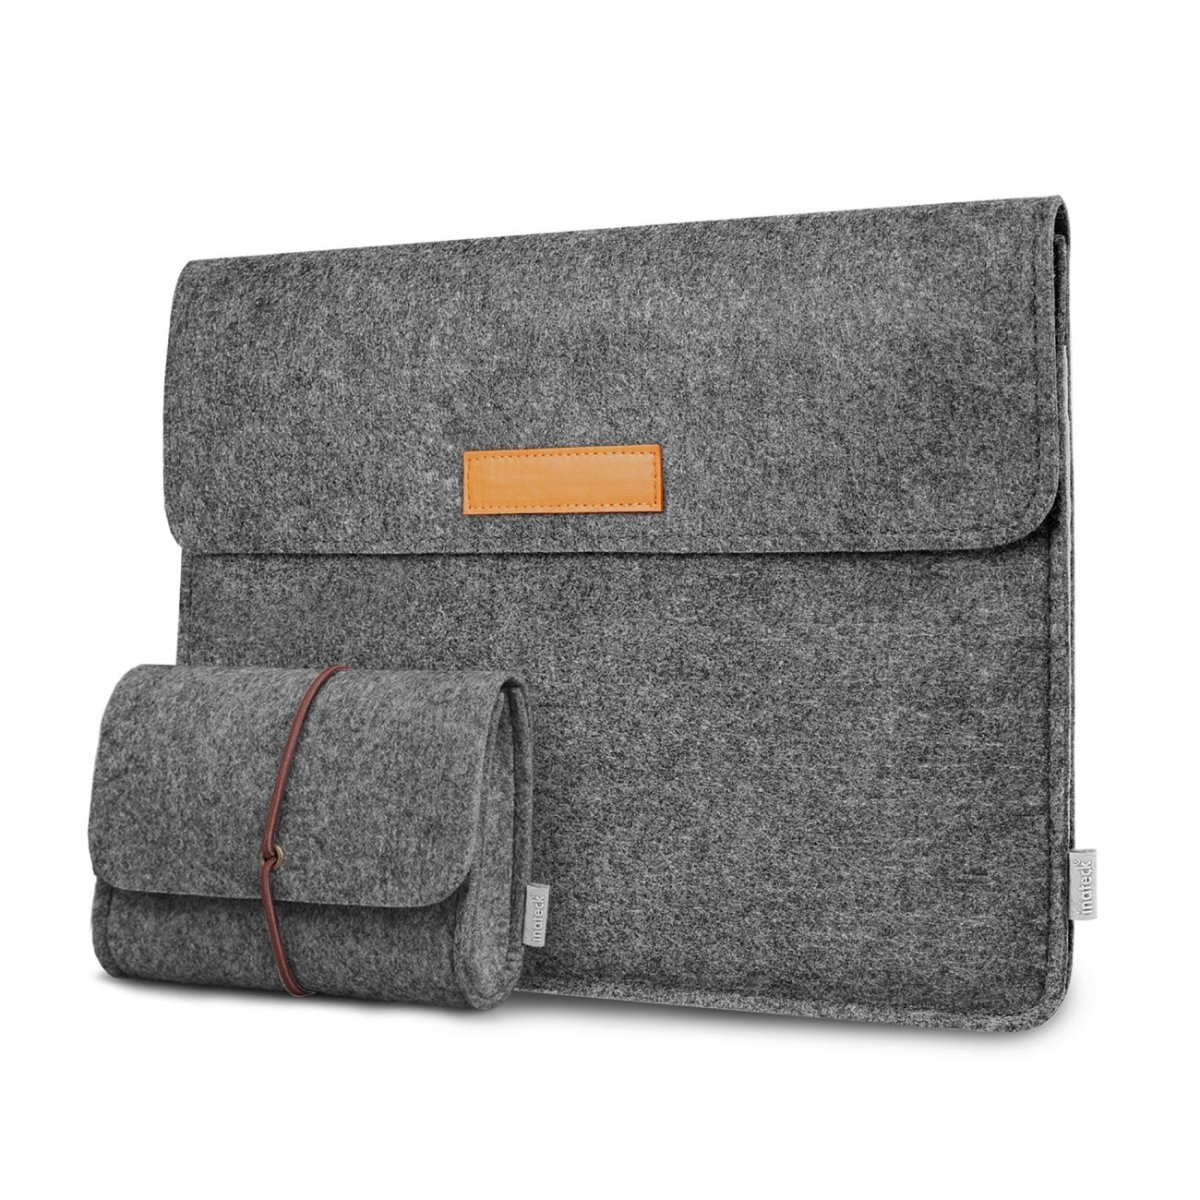 One of my favorite things about the Inateck MacBook sleeve is its versatility: I can use it as a carrying case, or as a sleeve, slipping my Mac into another bag instead. It has a great look and feel for me, I like the additional felt mouse bag too.